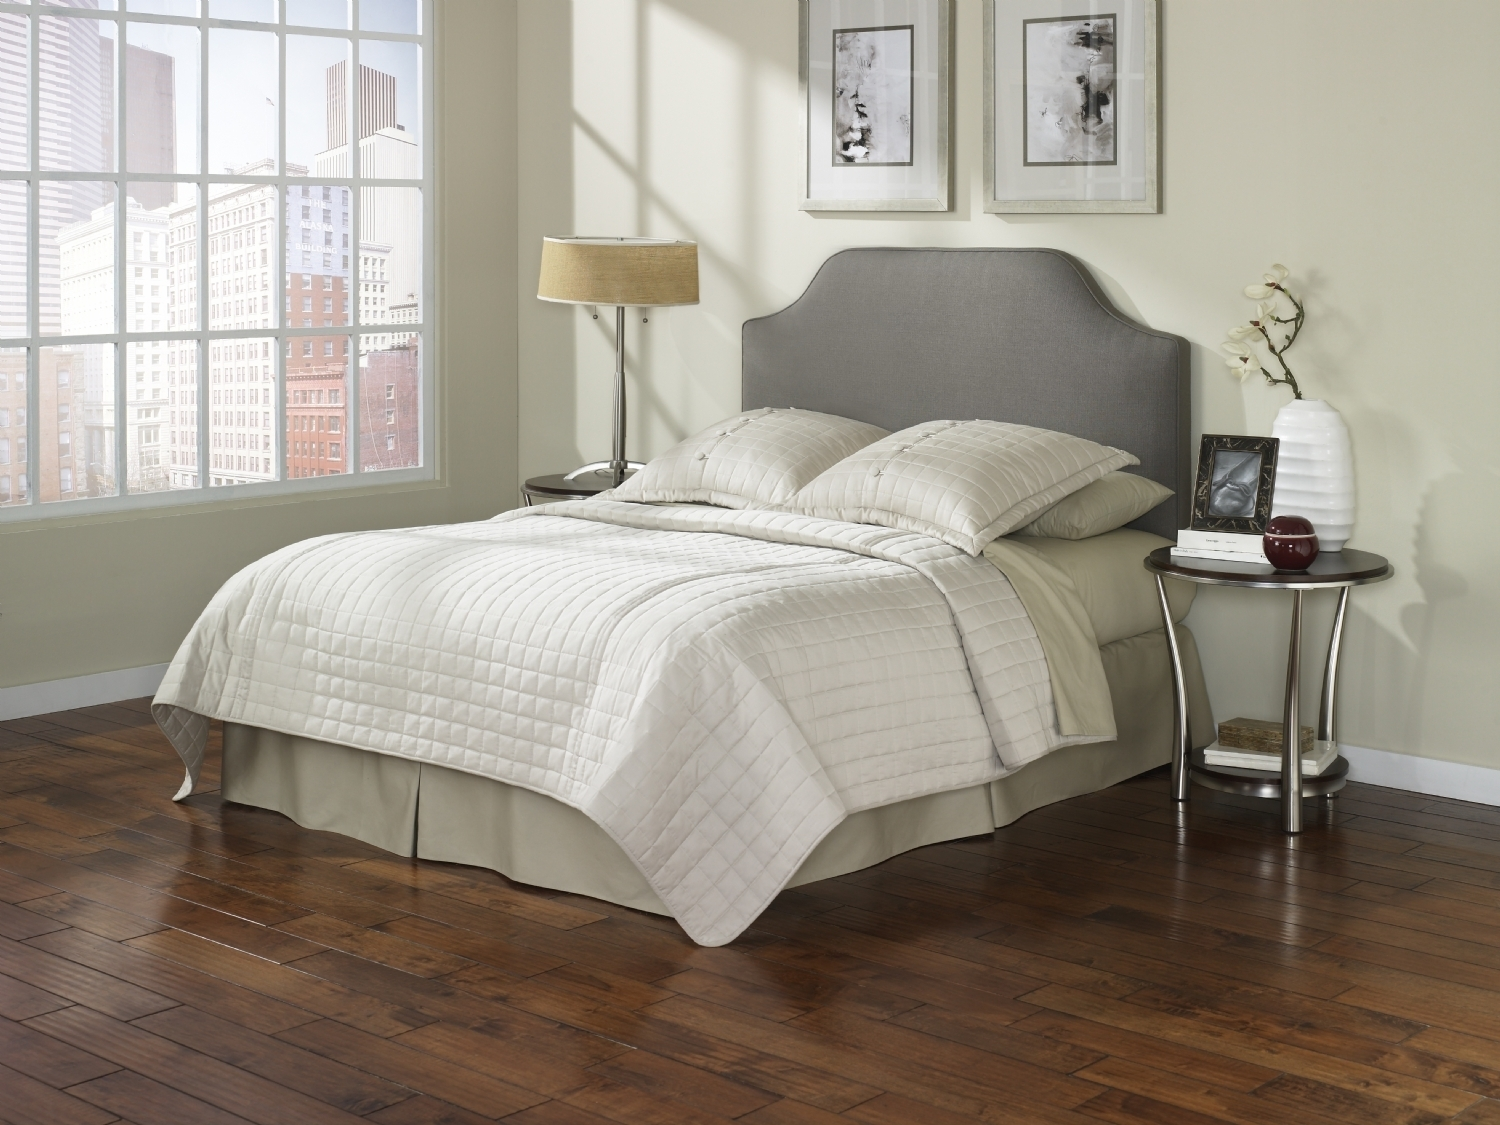 Image of: Excellent Twin Size Upholstered Headboards Headboard Ikea